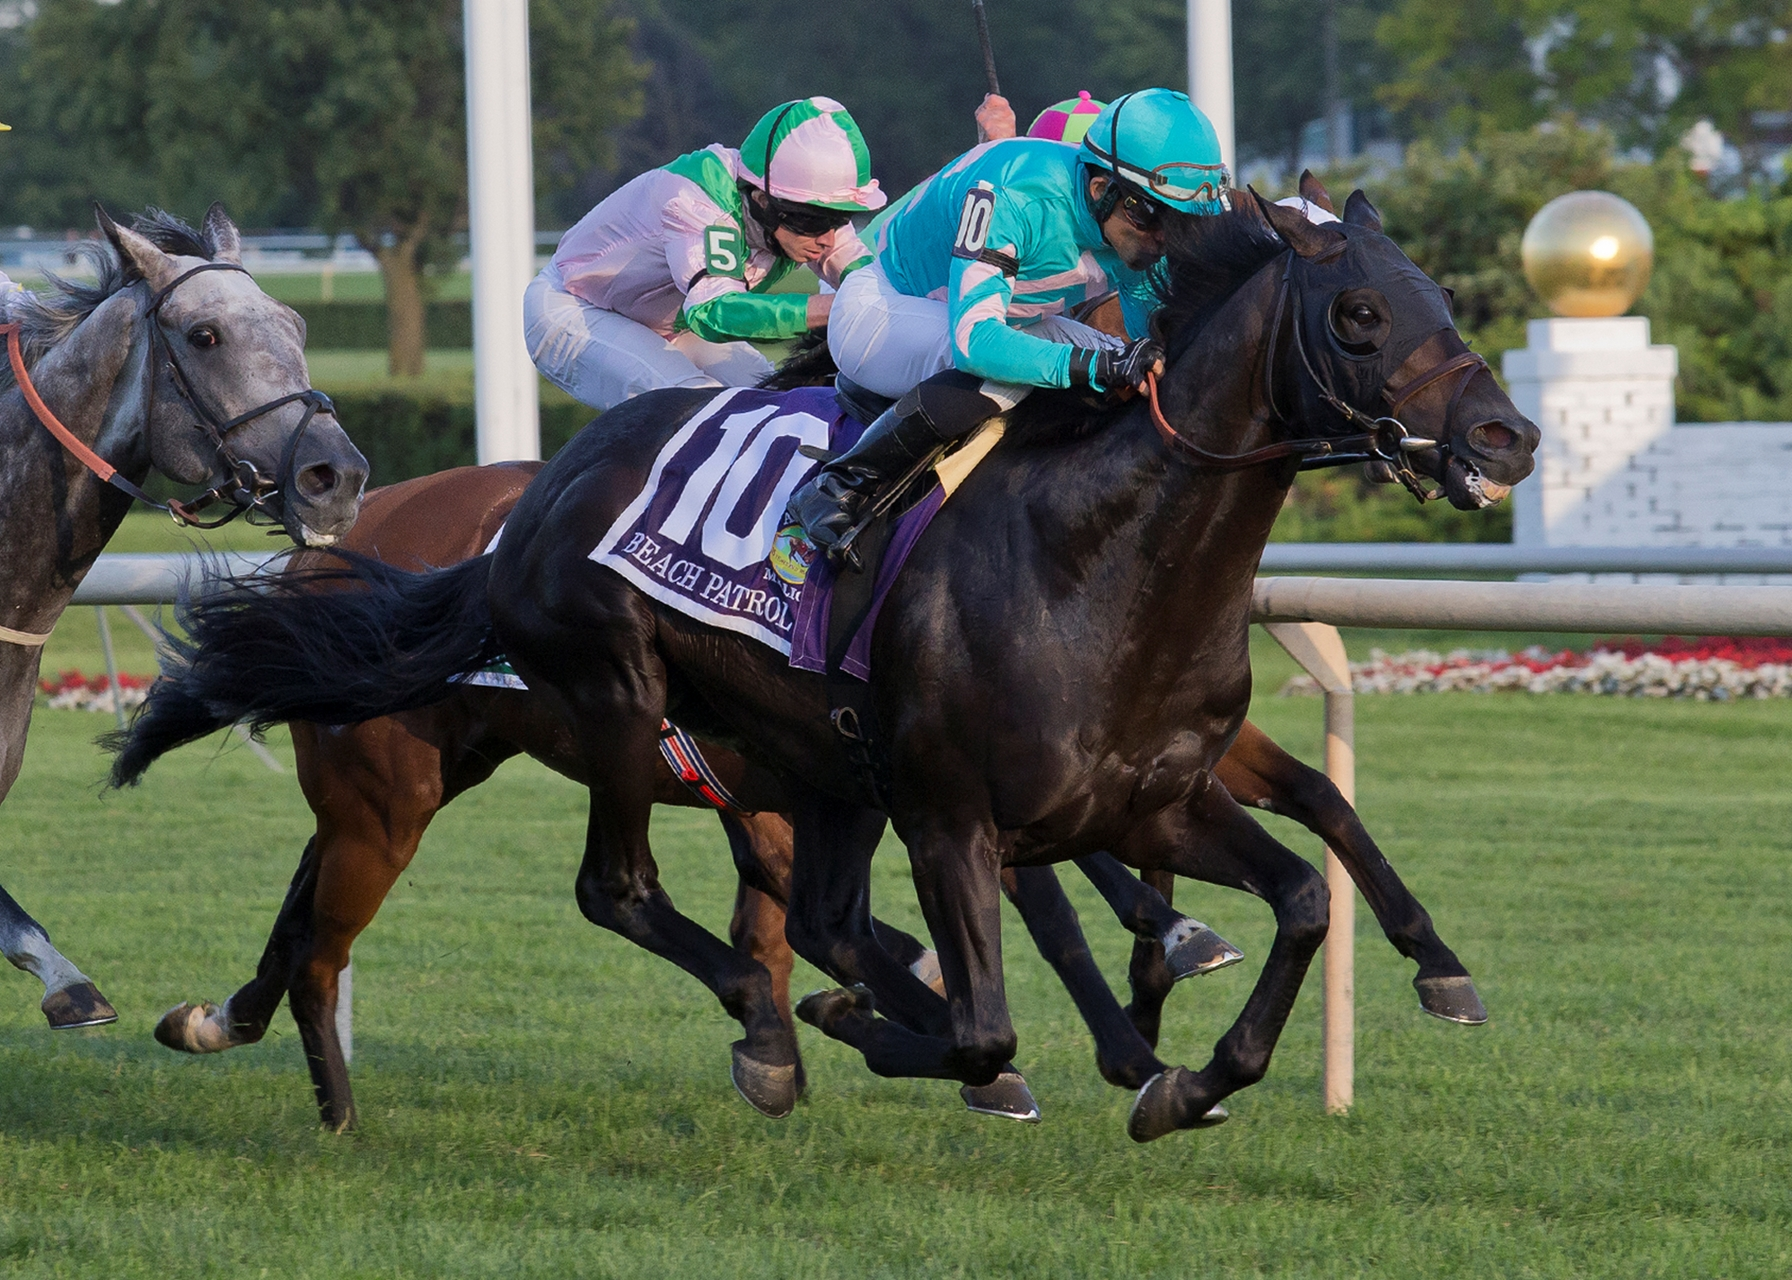 Beach Patrol wins Arlington Million, earns birth in Breeders' Cup Turf